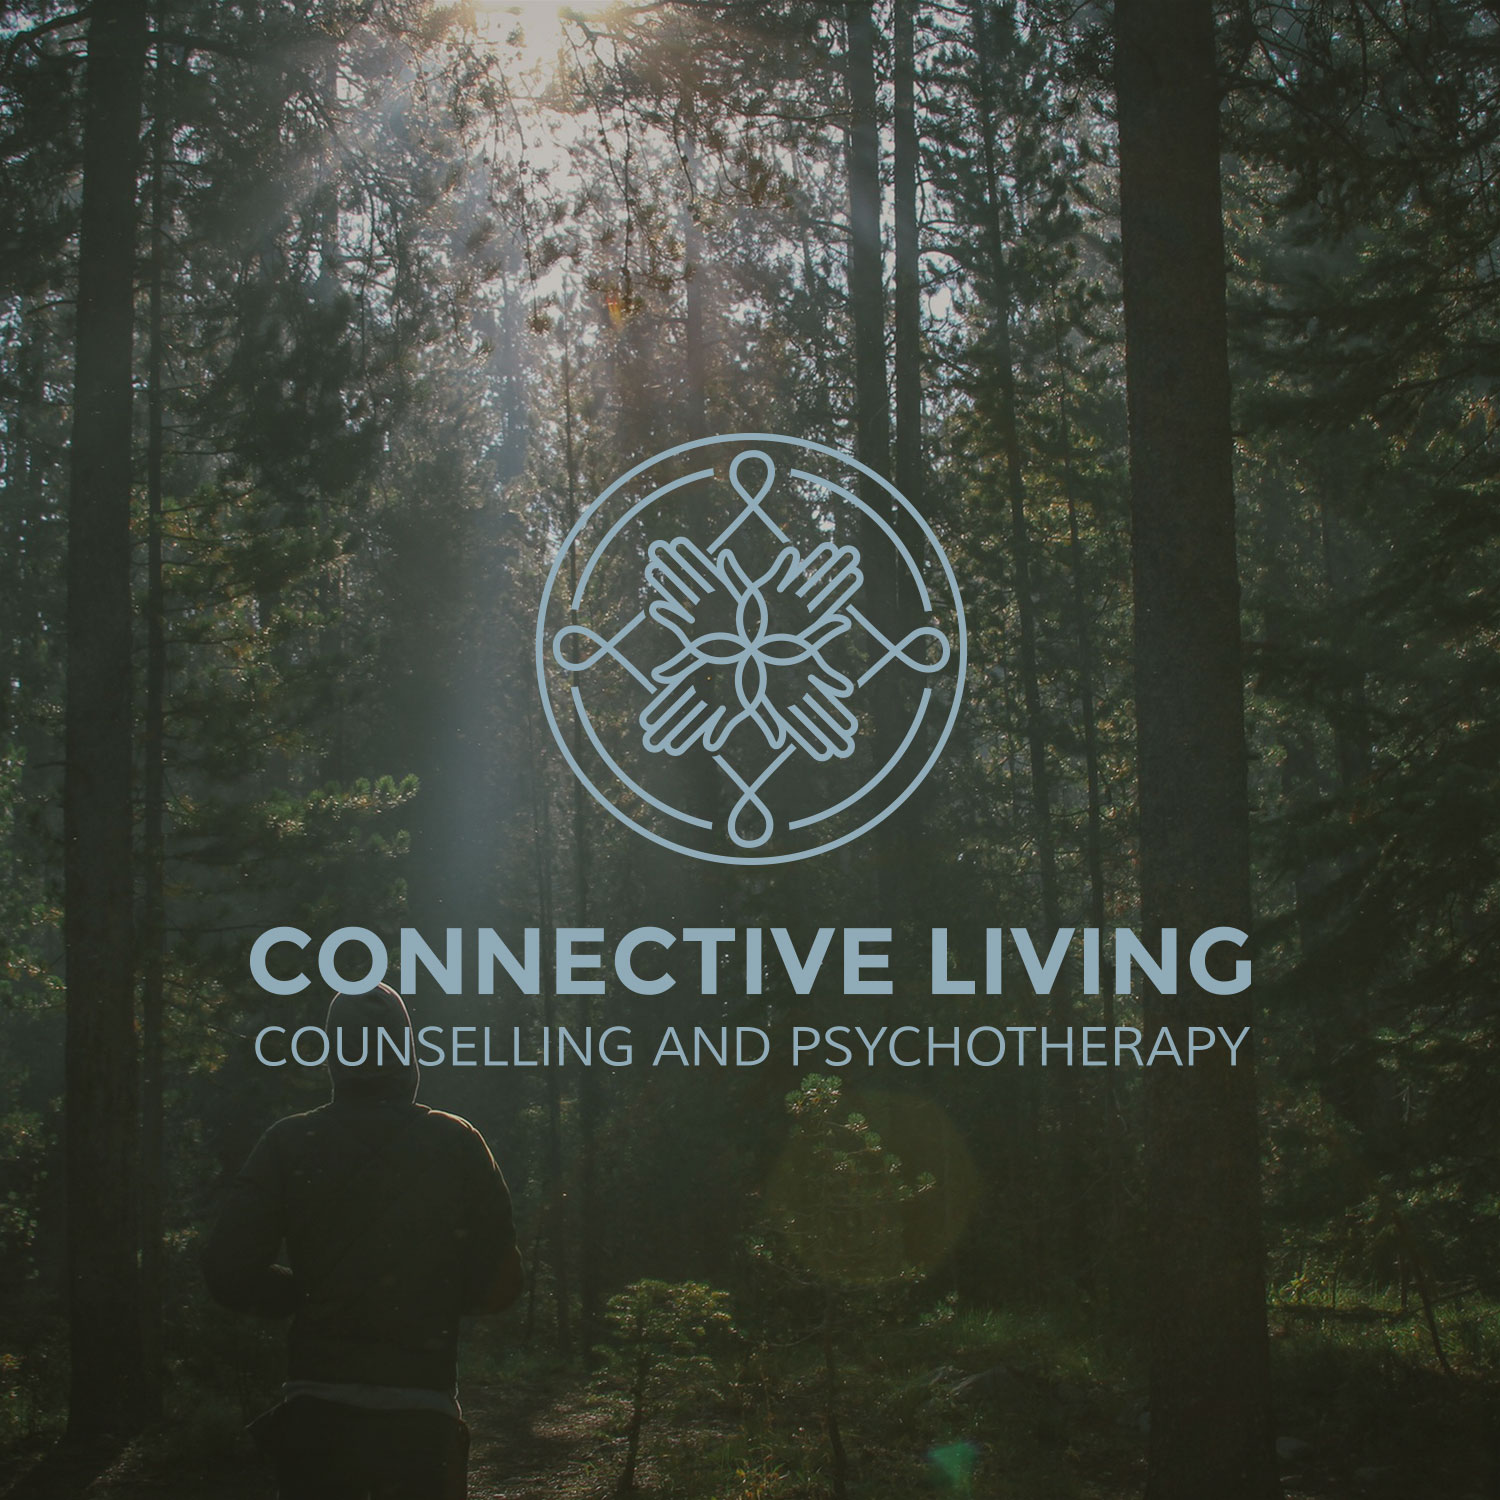 Connective Living